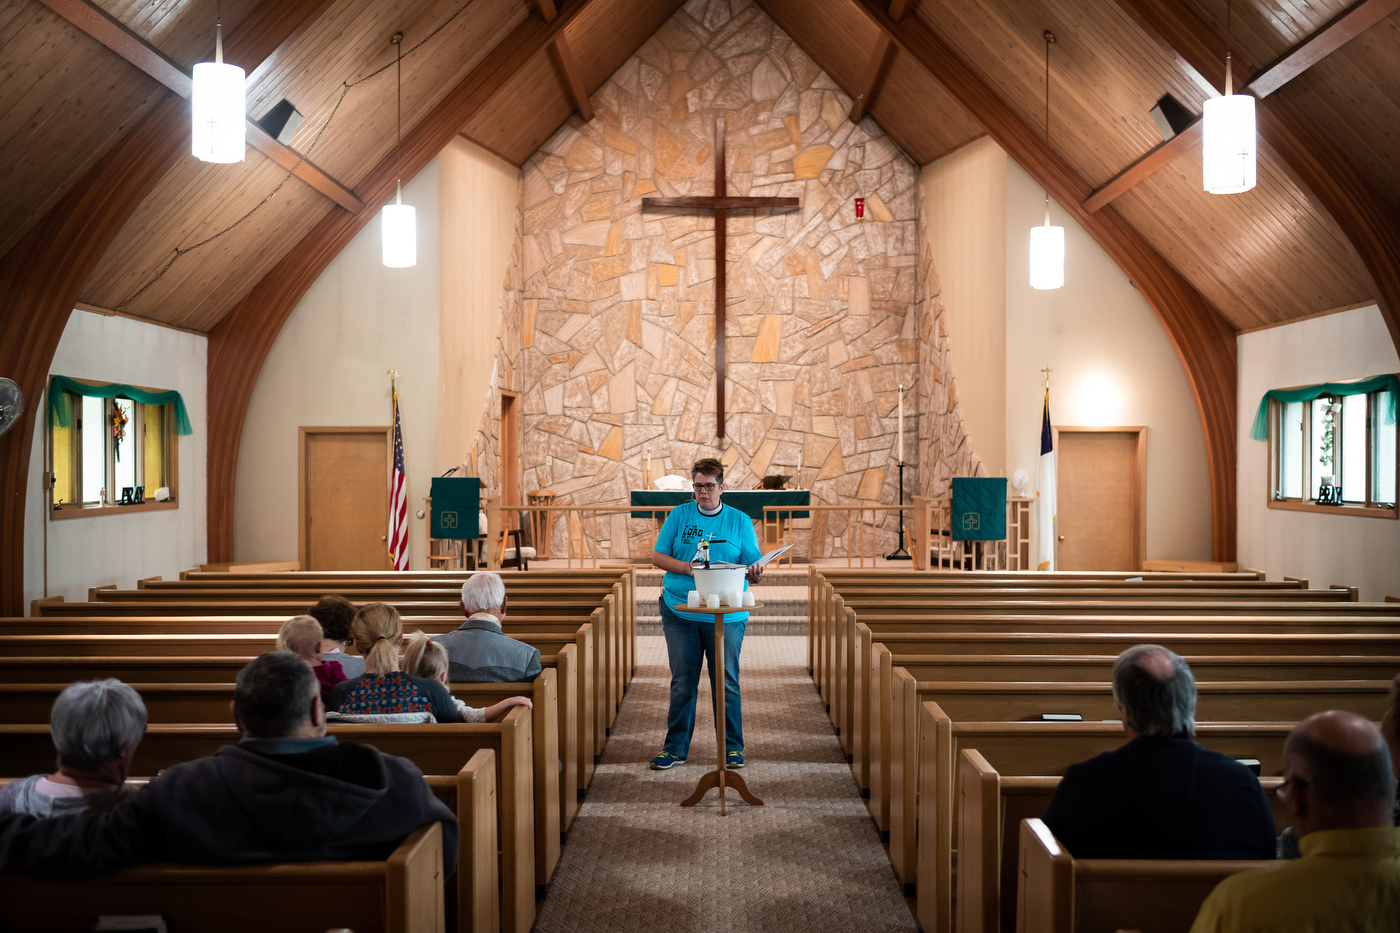 Pastor Tera Kossow leads worship at American Lutheran Church, an ELCA church, in Bison, SD.